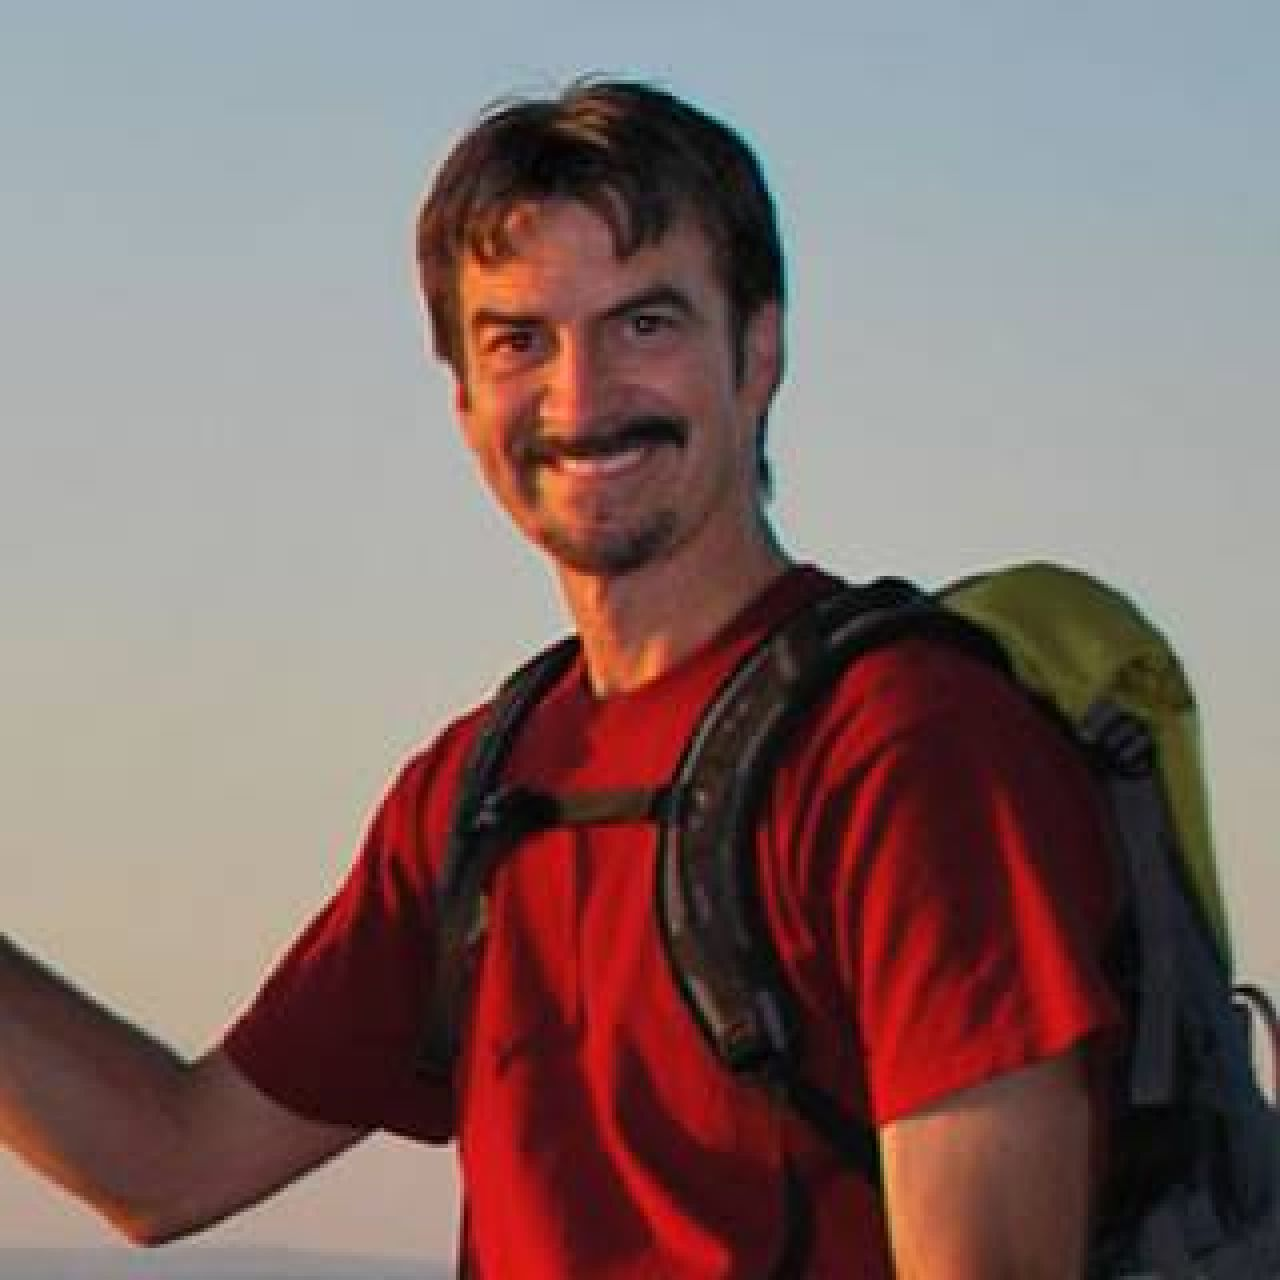 Headshot of Chuck Dovish outfitted in backpacking gear and a red T-shirt